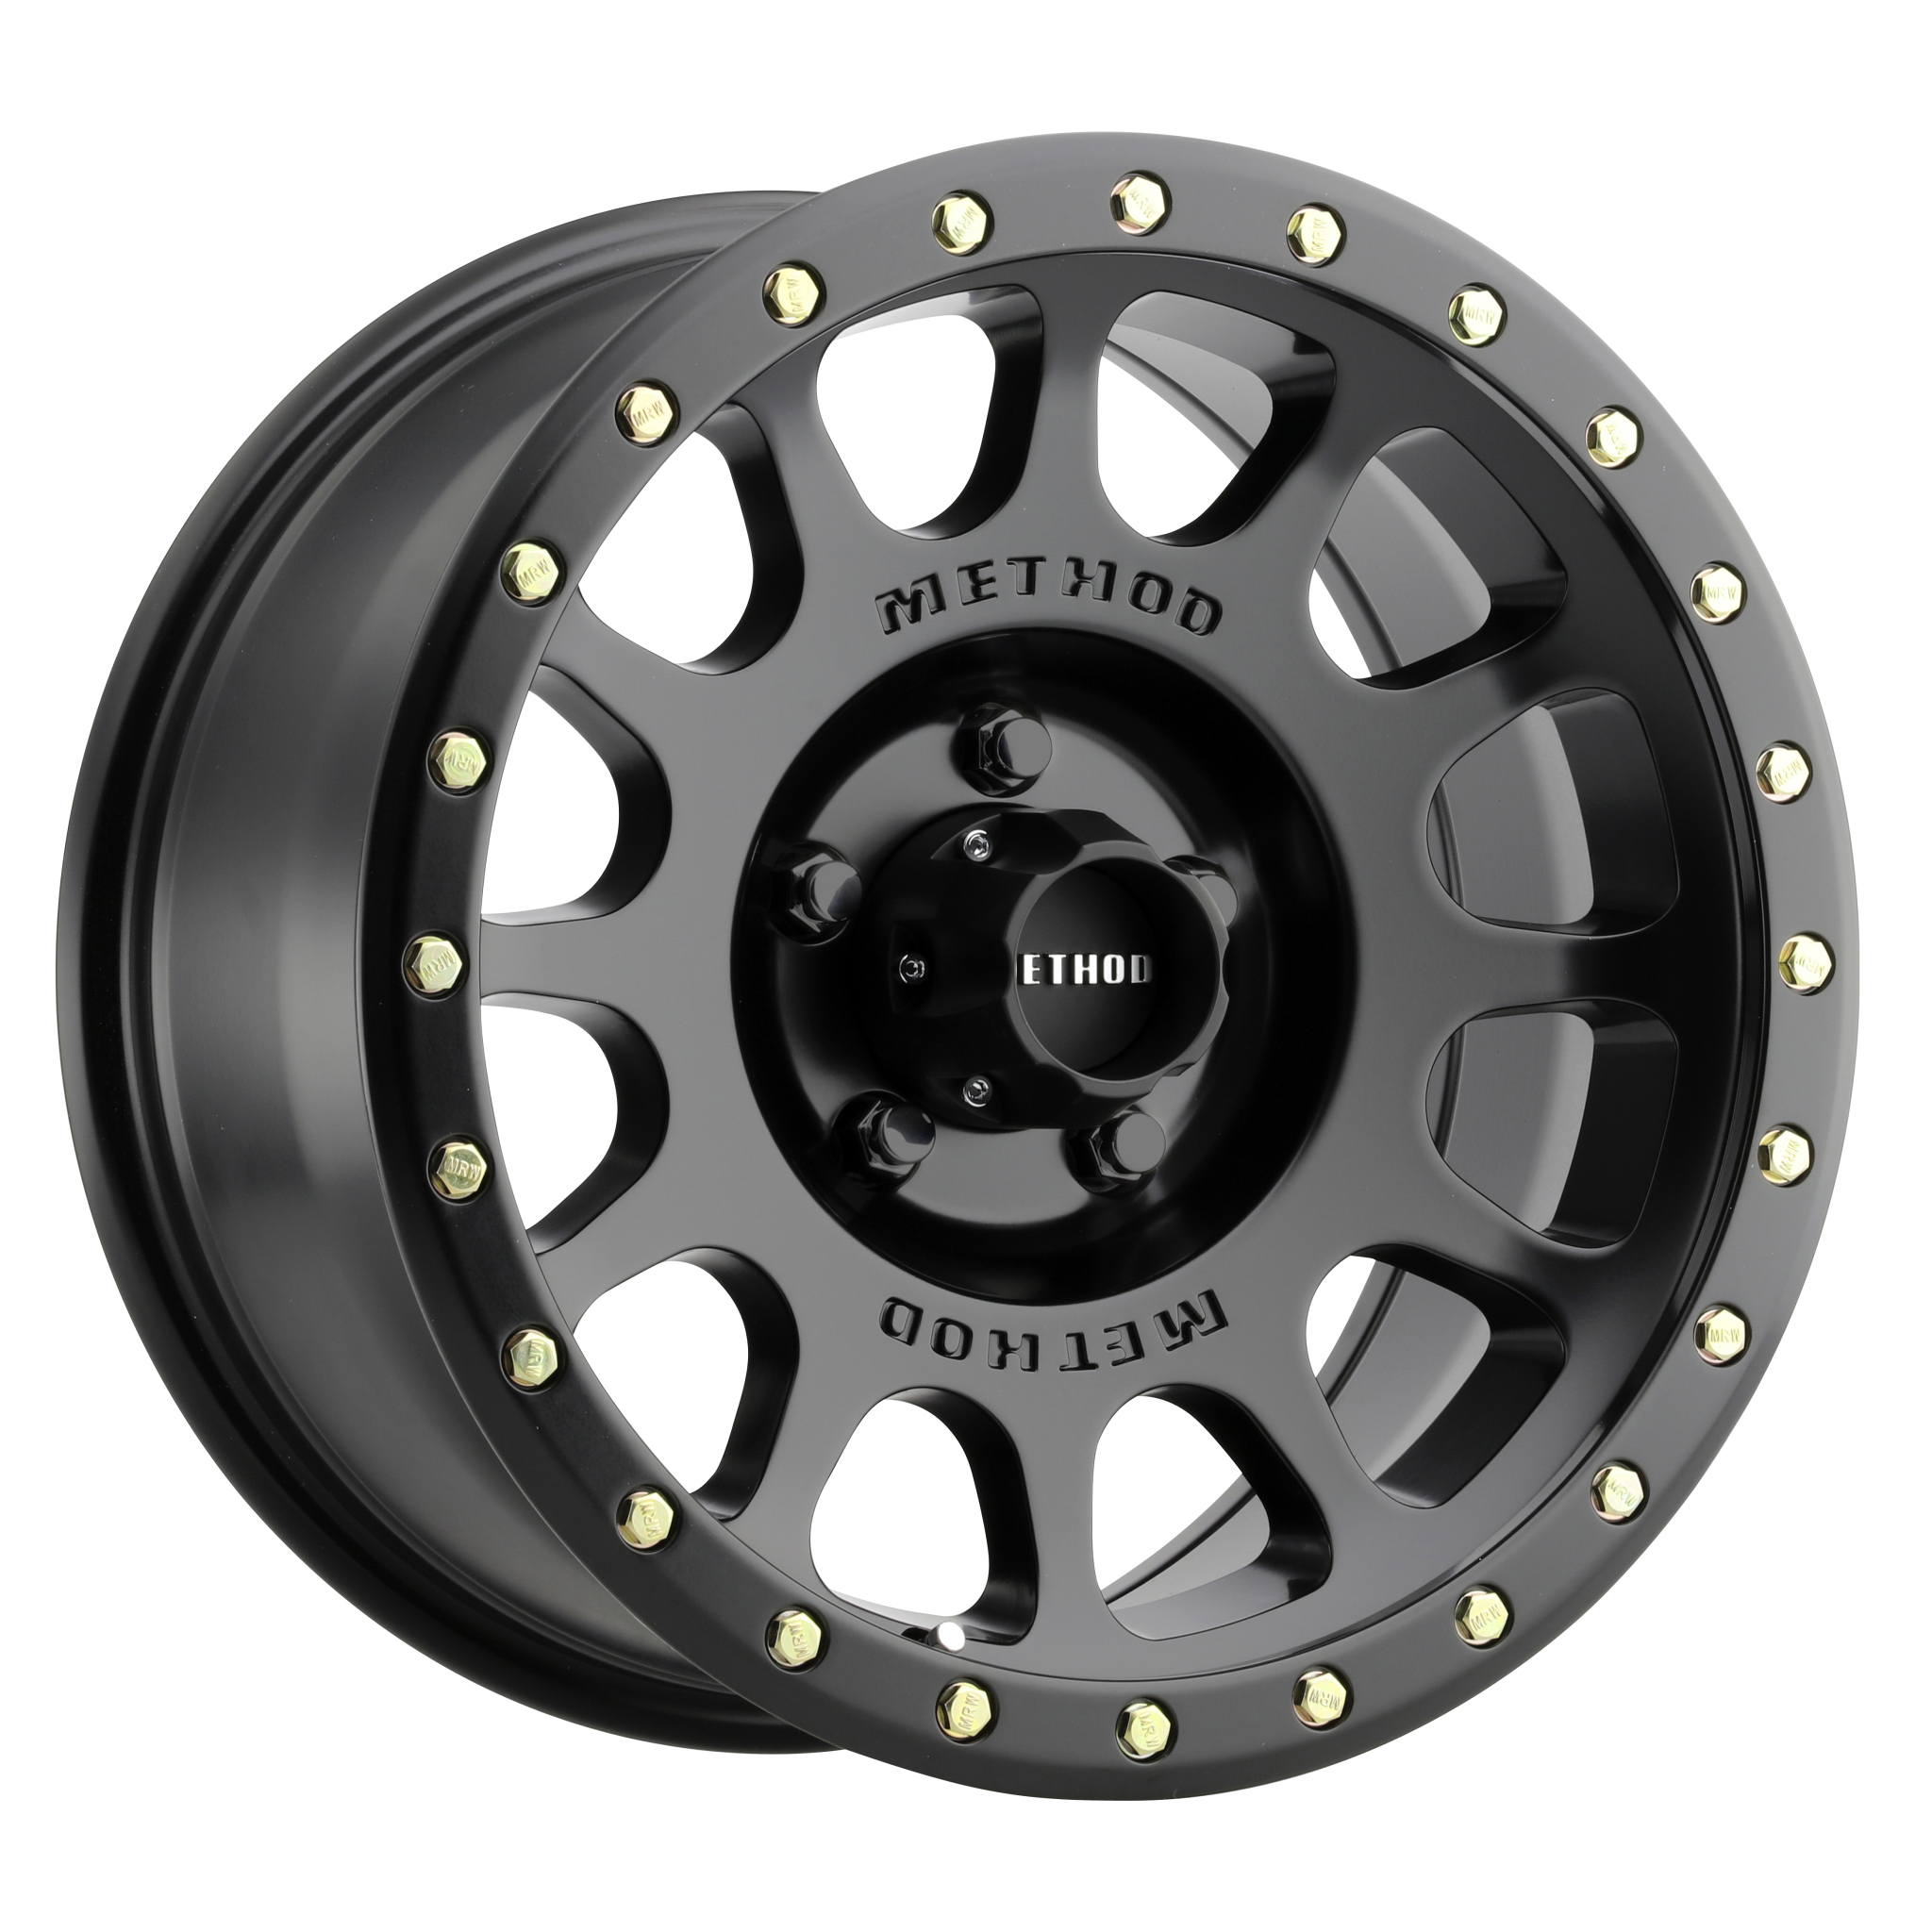 Method 305 NV, 20x9, +25mm Offset, 5x150, 116.5mm Centerbore, Matte Black